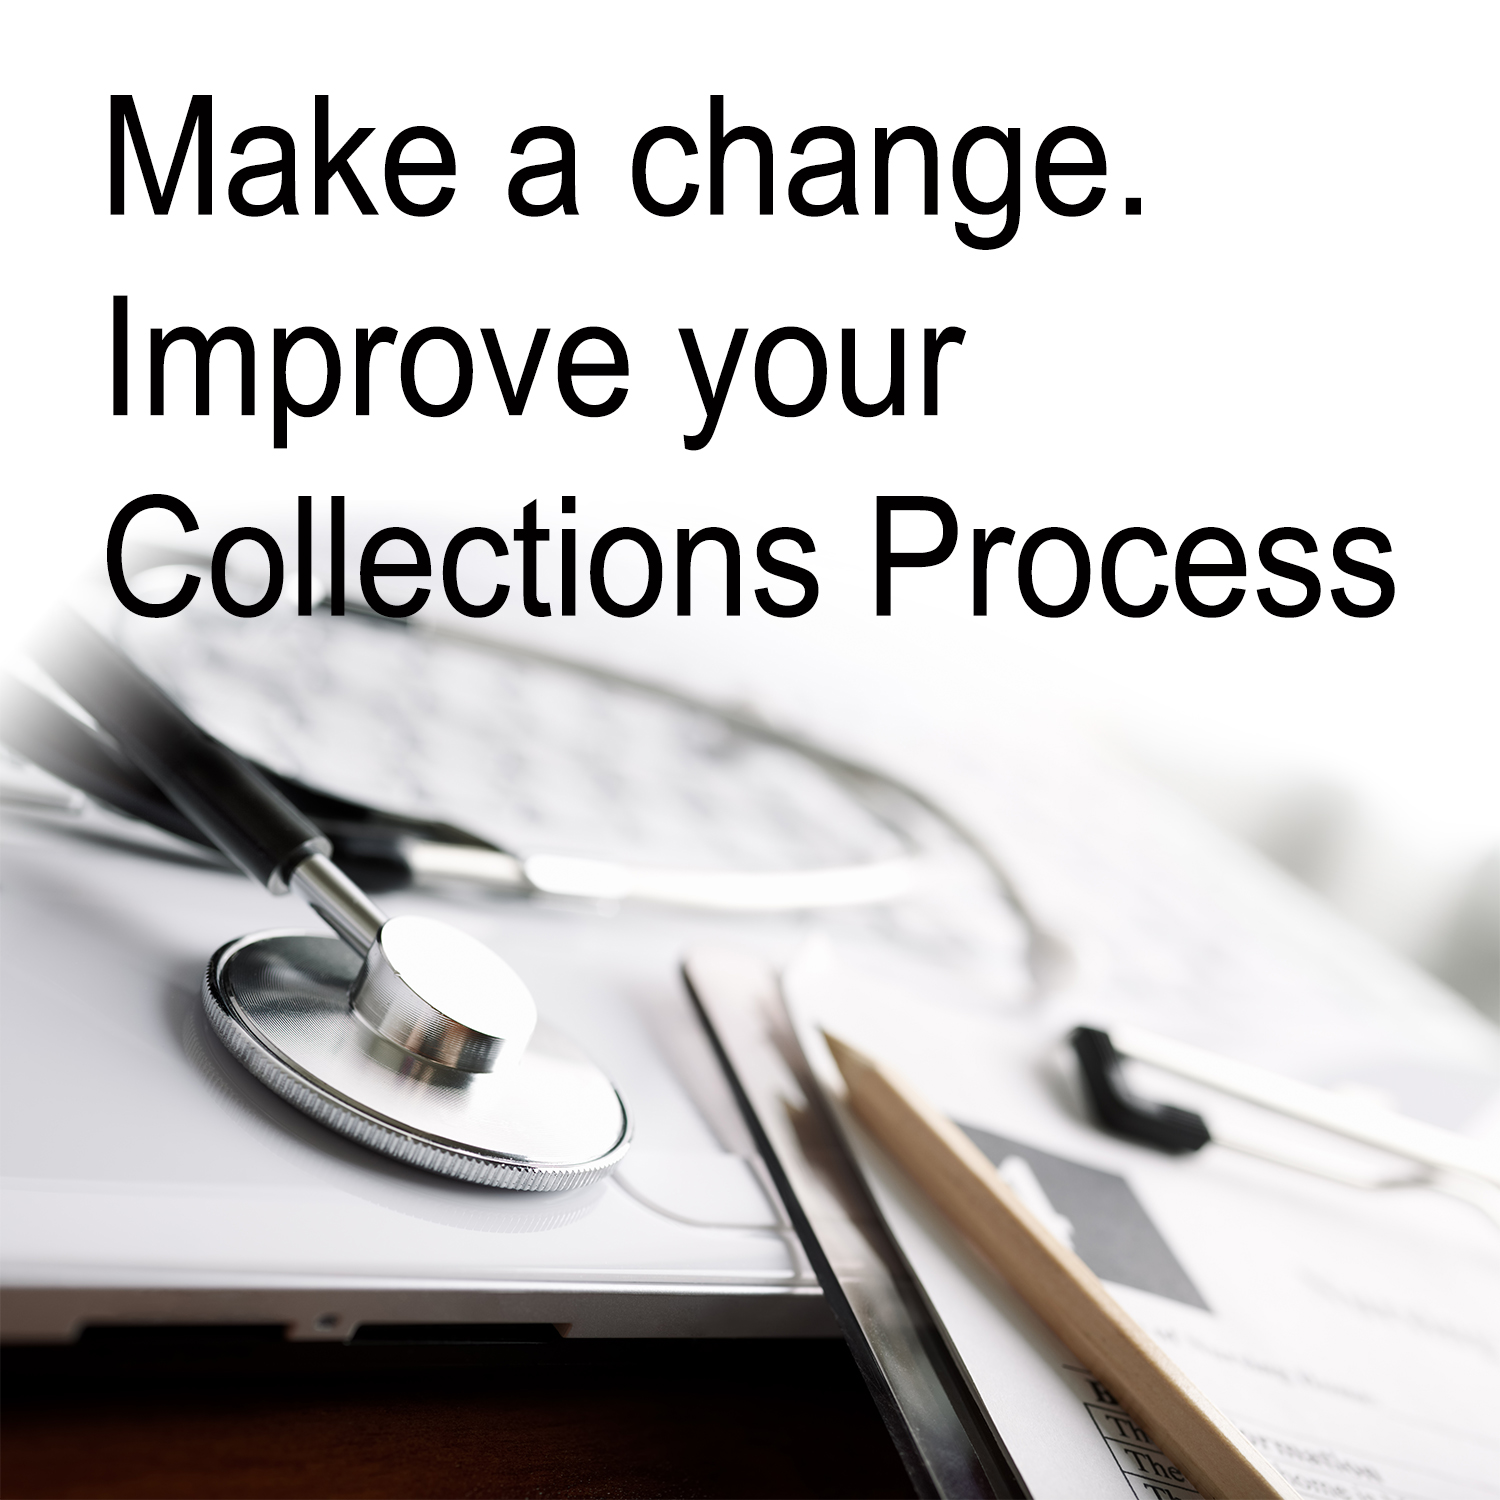 How to improve your collections process with 5 easy changes